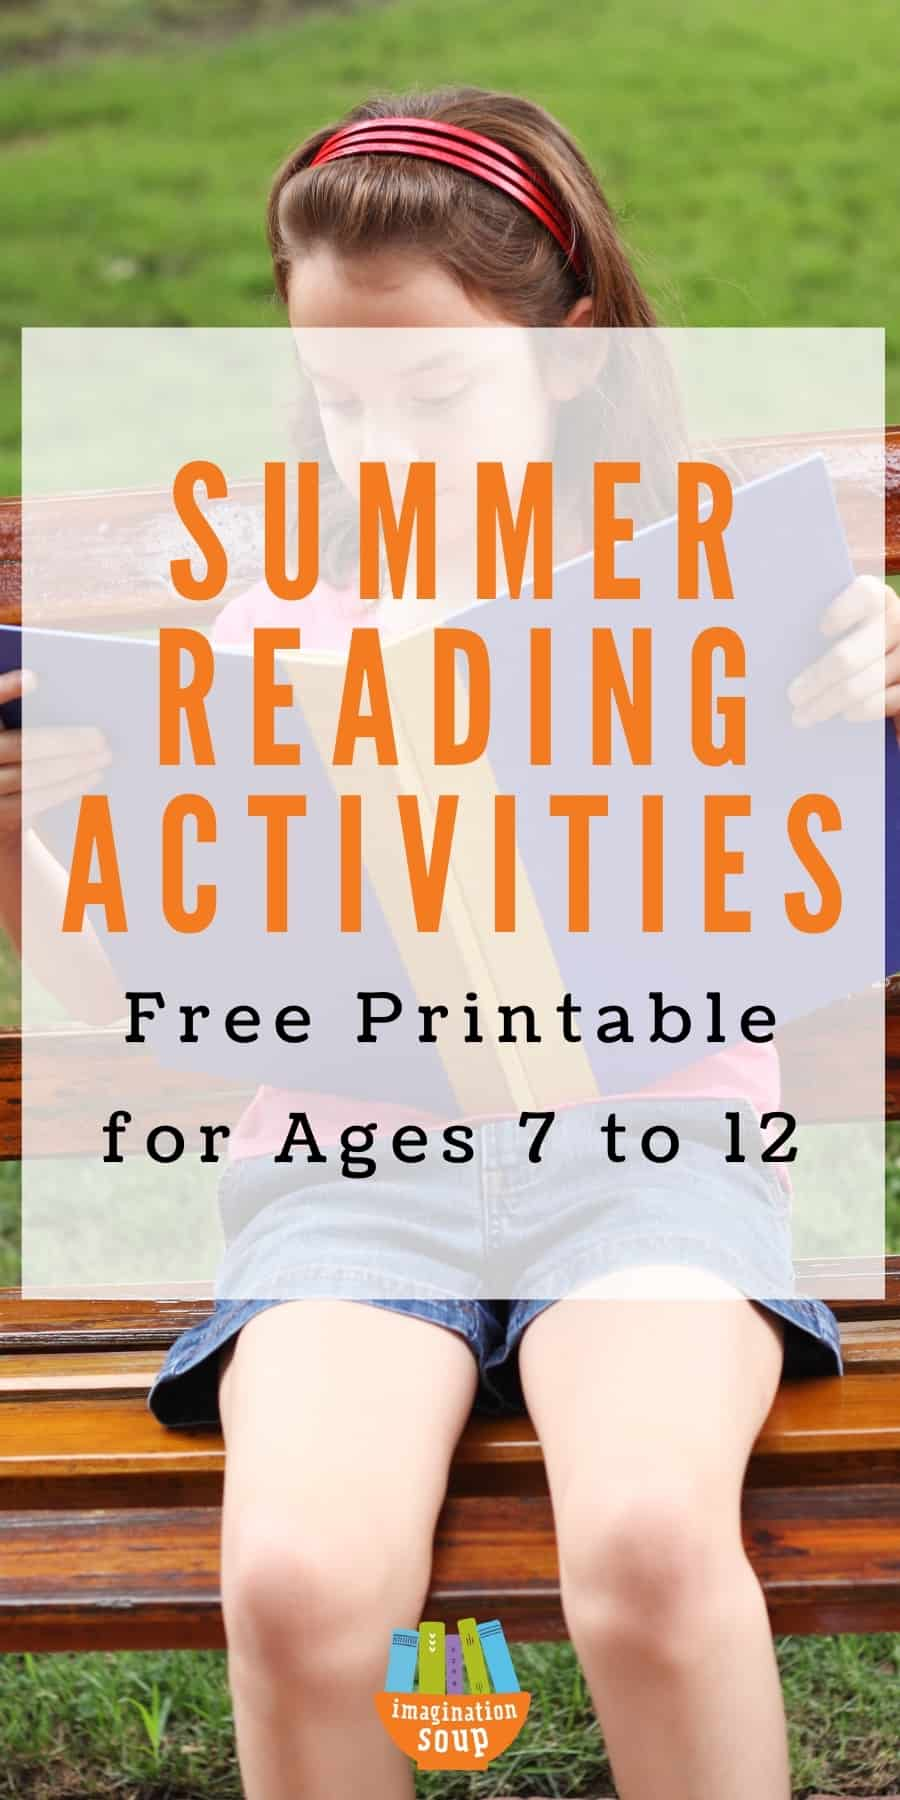 Summer Reading Activities for Kids Free Printable